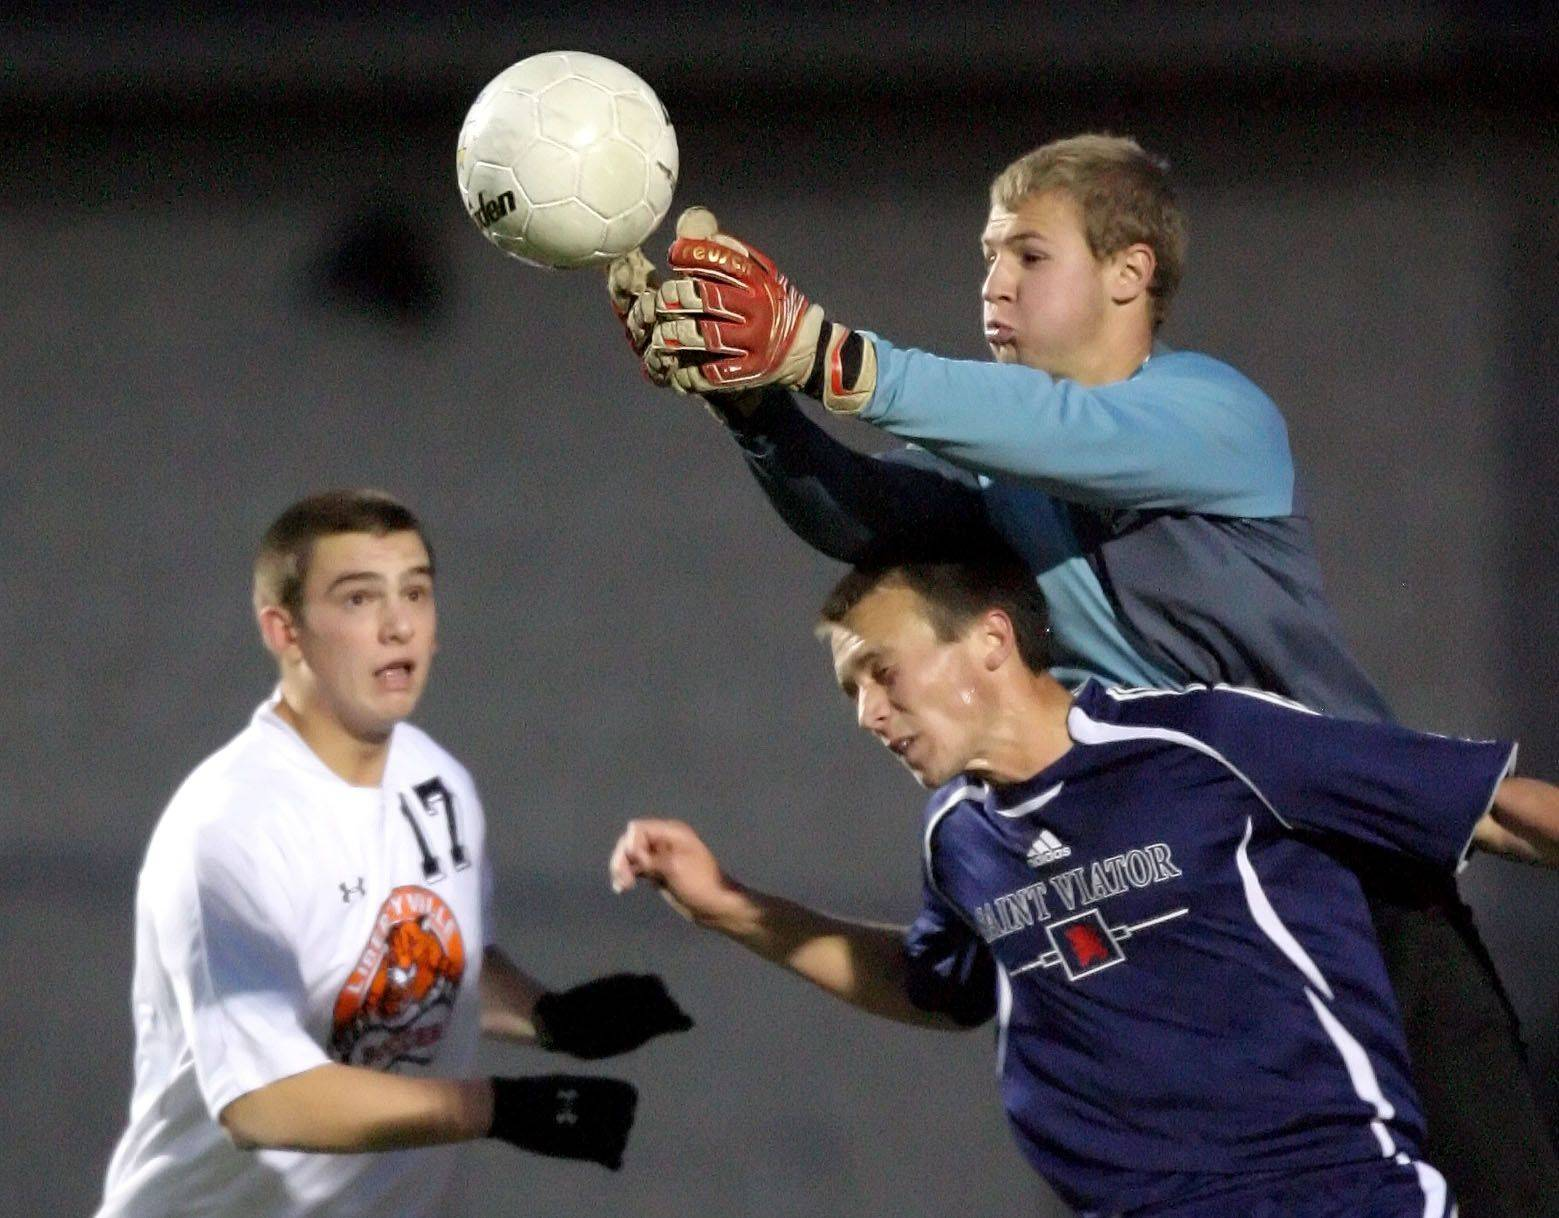 St. Viator goalie Scott Faul jumps over the back of teammate Joe Surdam to make the save as Libertyville's Austin Bitta looks on during the class 3A sectional semifinal at Libertyville High School Wednesday.